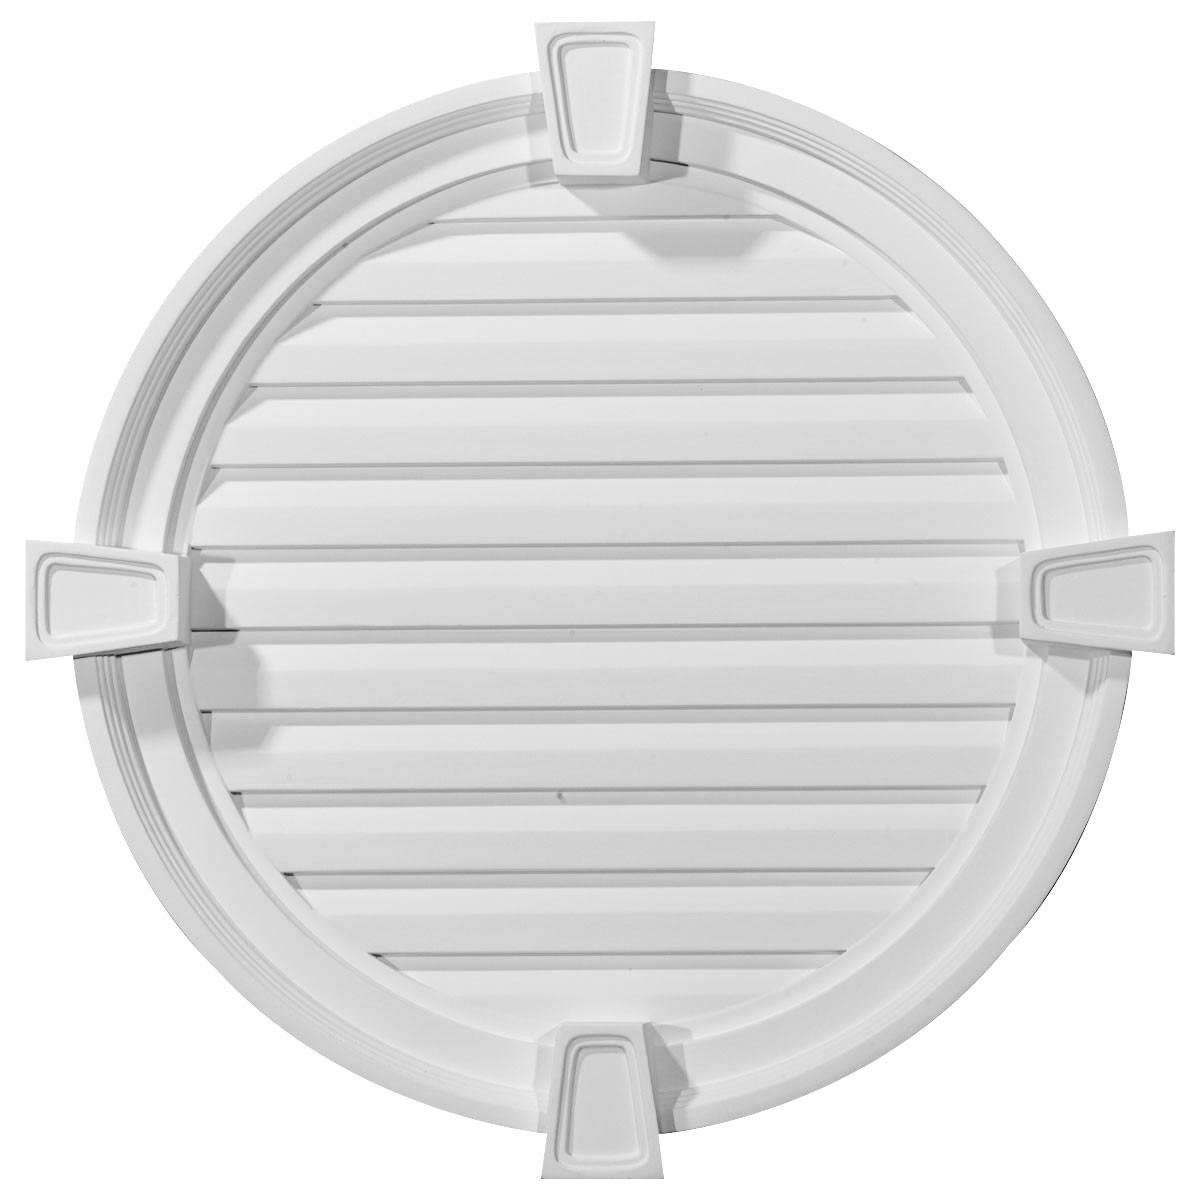 """EM-GVRO24FK - 24""""W x 24""""H x 2 1/8""""P, Round Gable Vent with Keystones, Functional"""